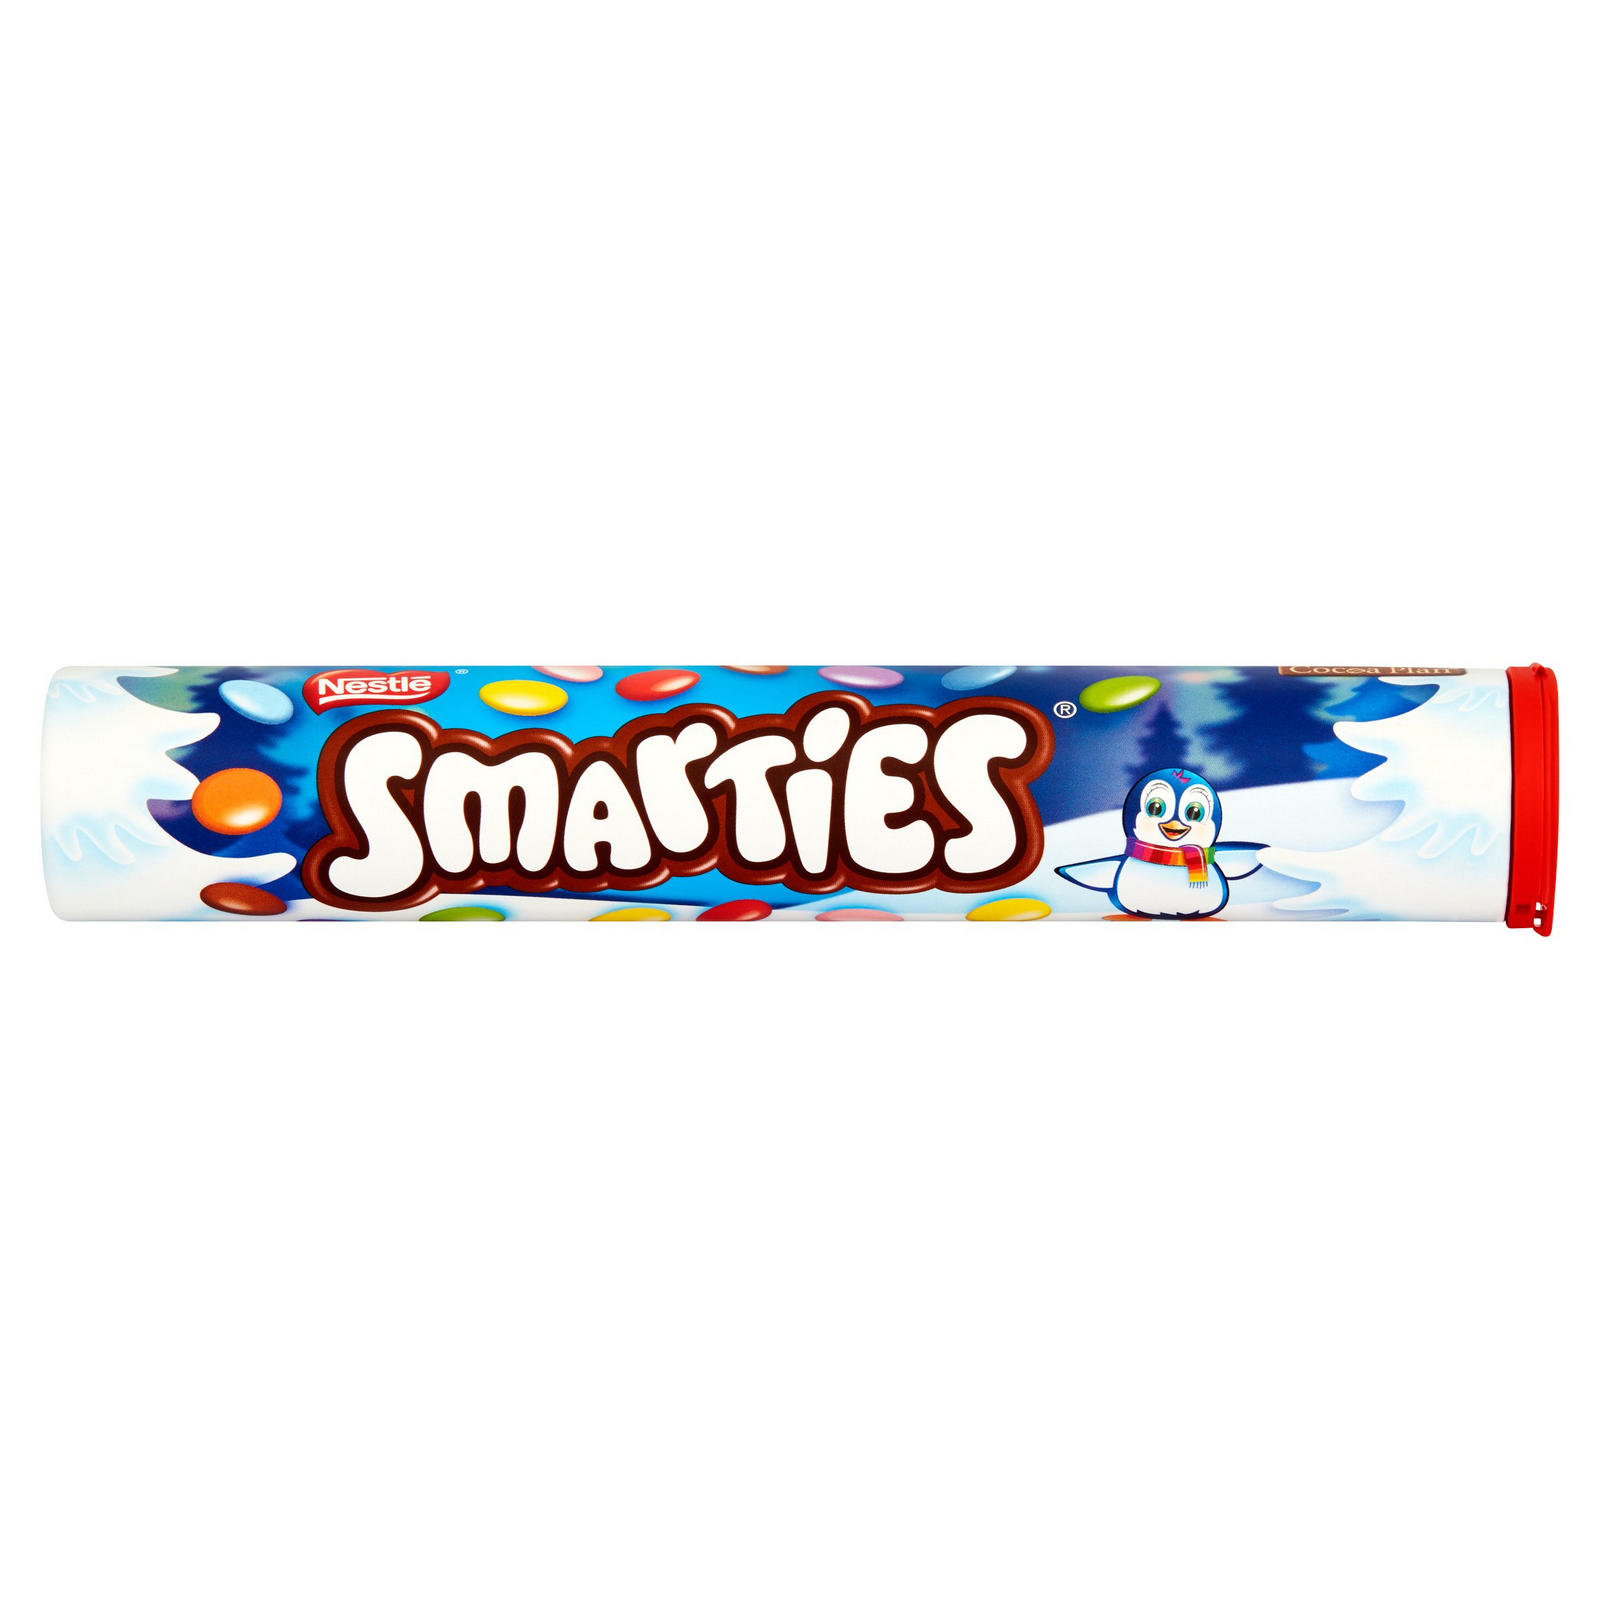 Nestlé Smarties Chocolate Giant Tube 130g | Sharing Bags